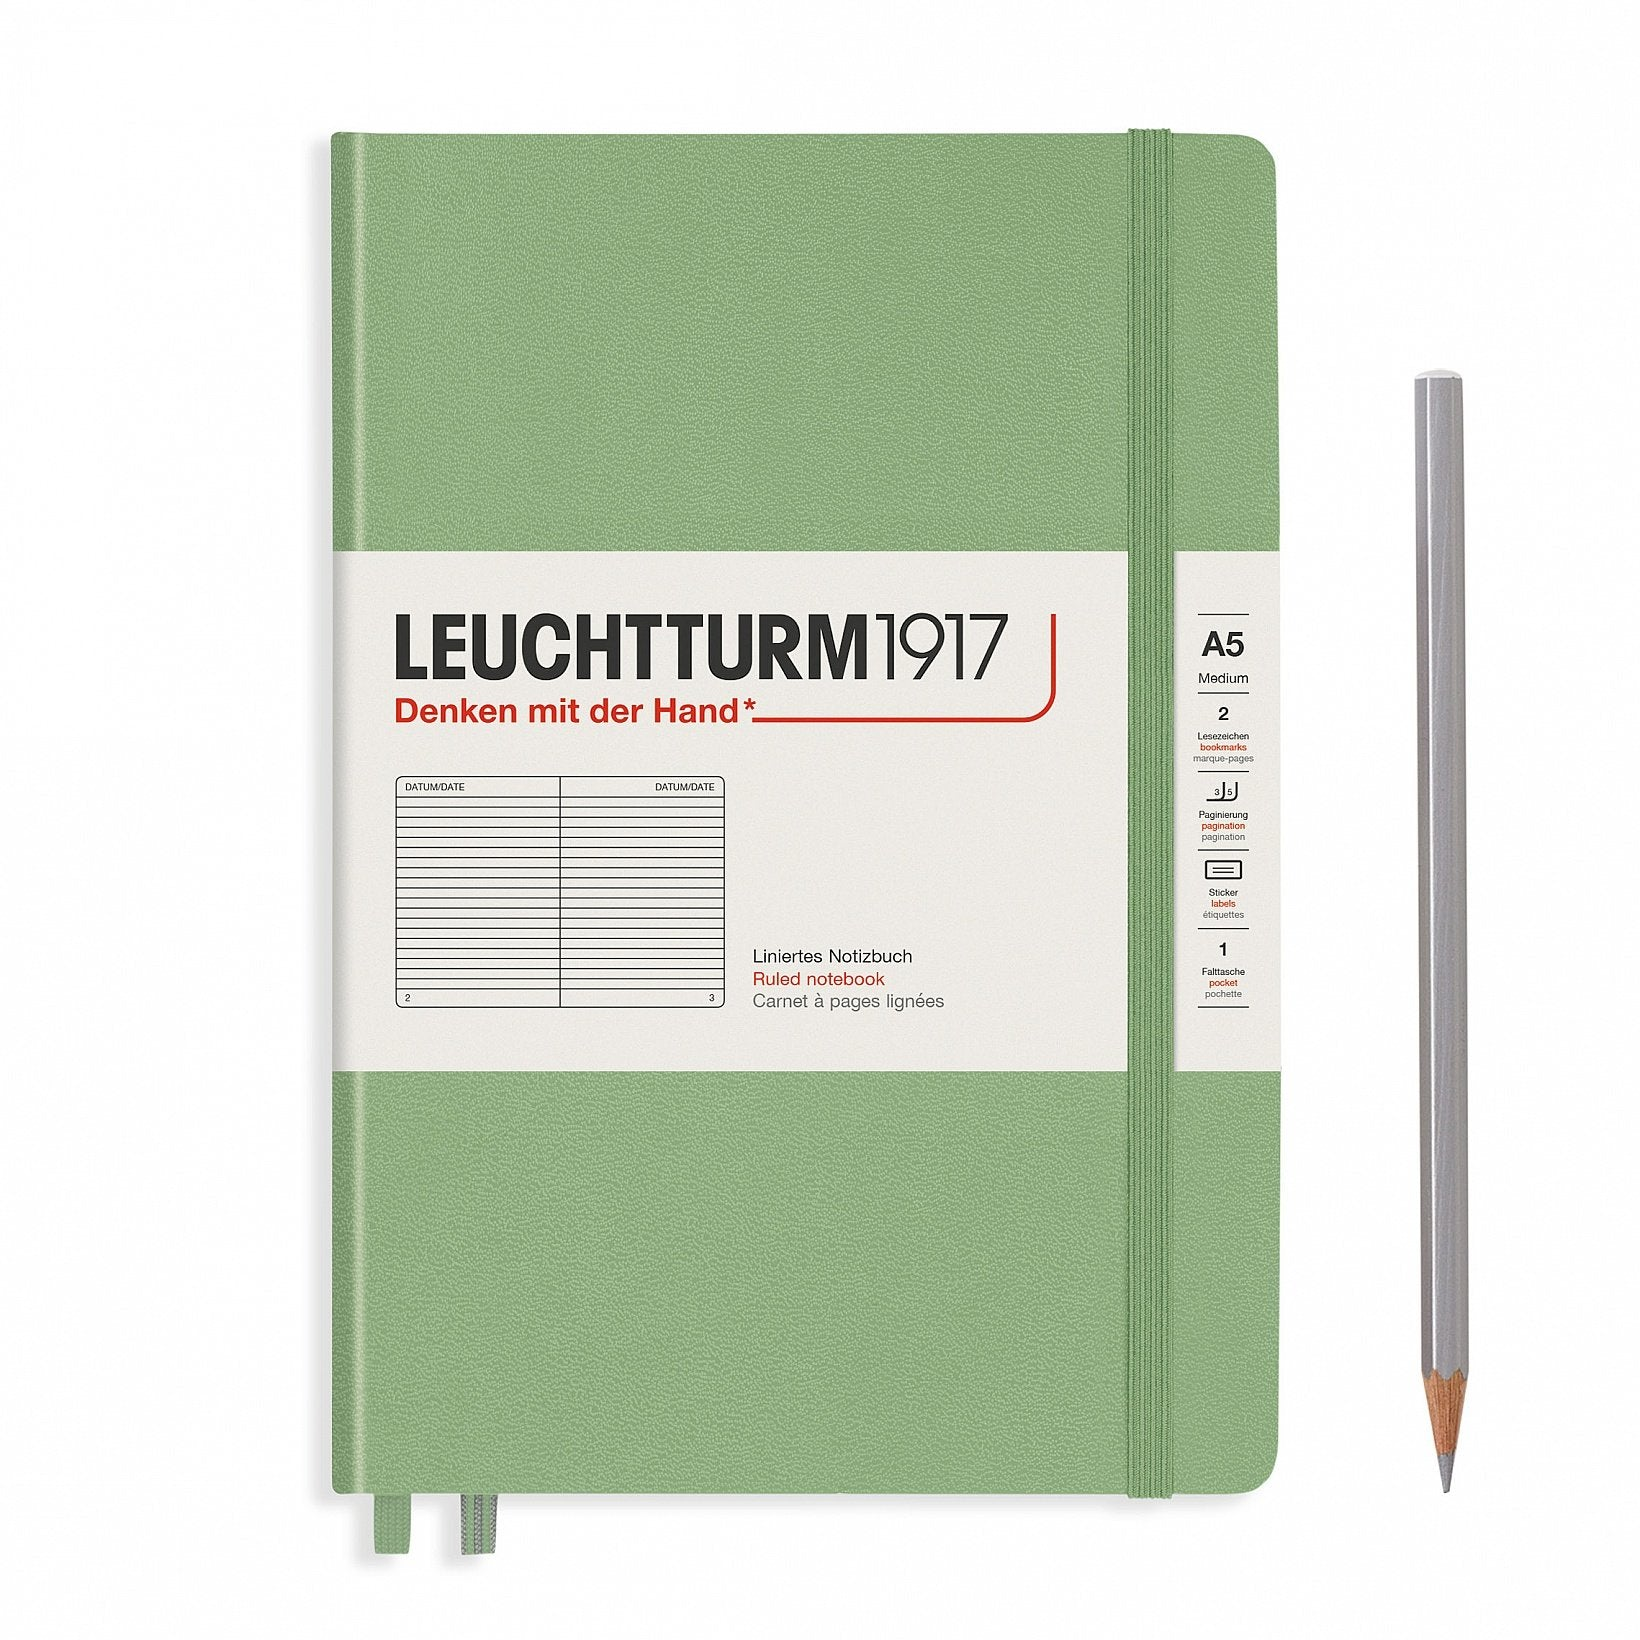 A5 Ruled Hardcover Notebooks, Leuchtturm1917